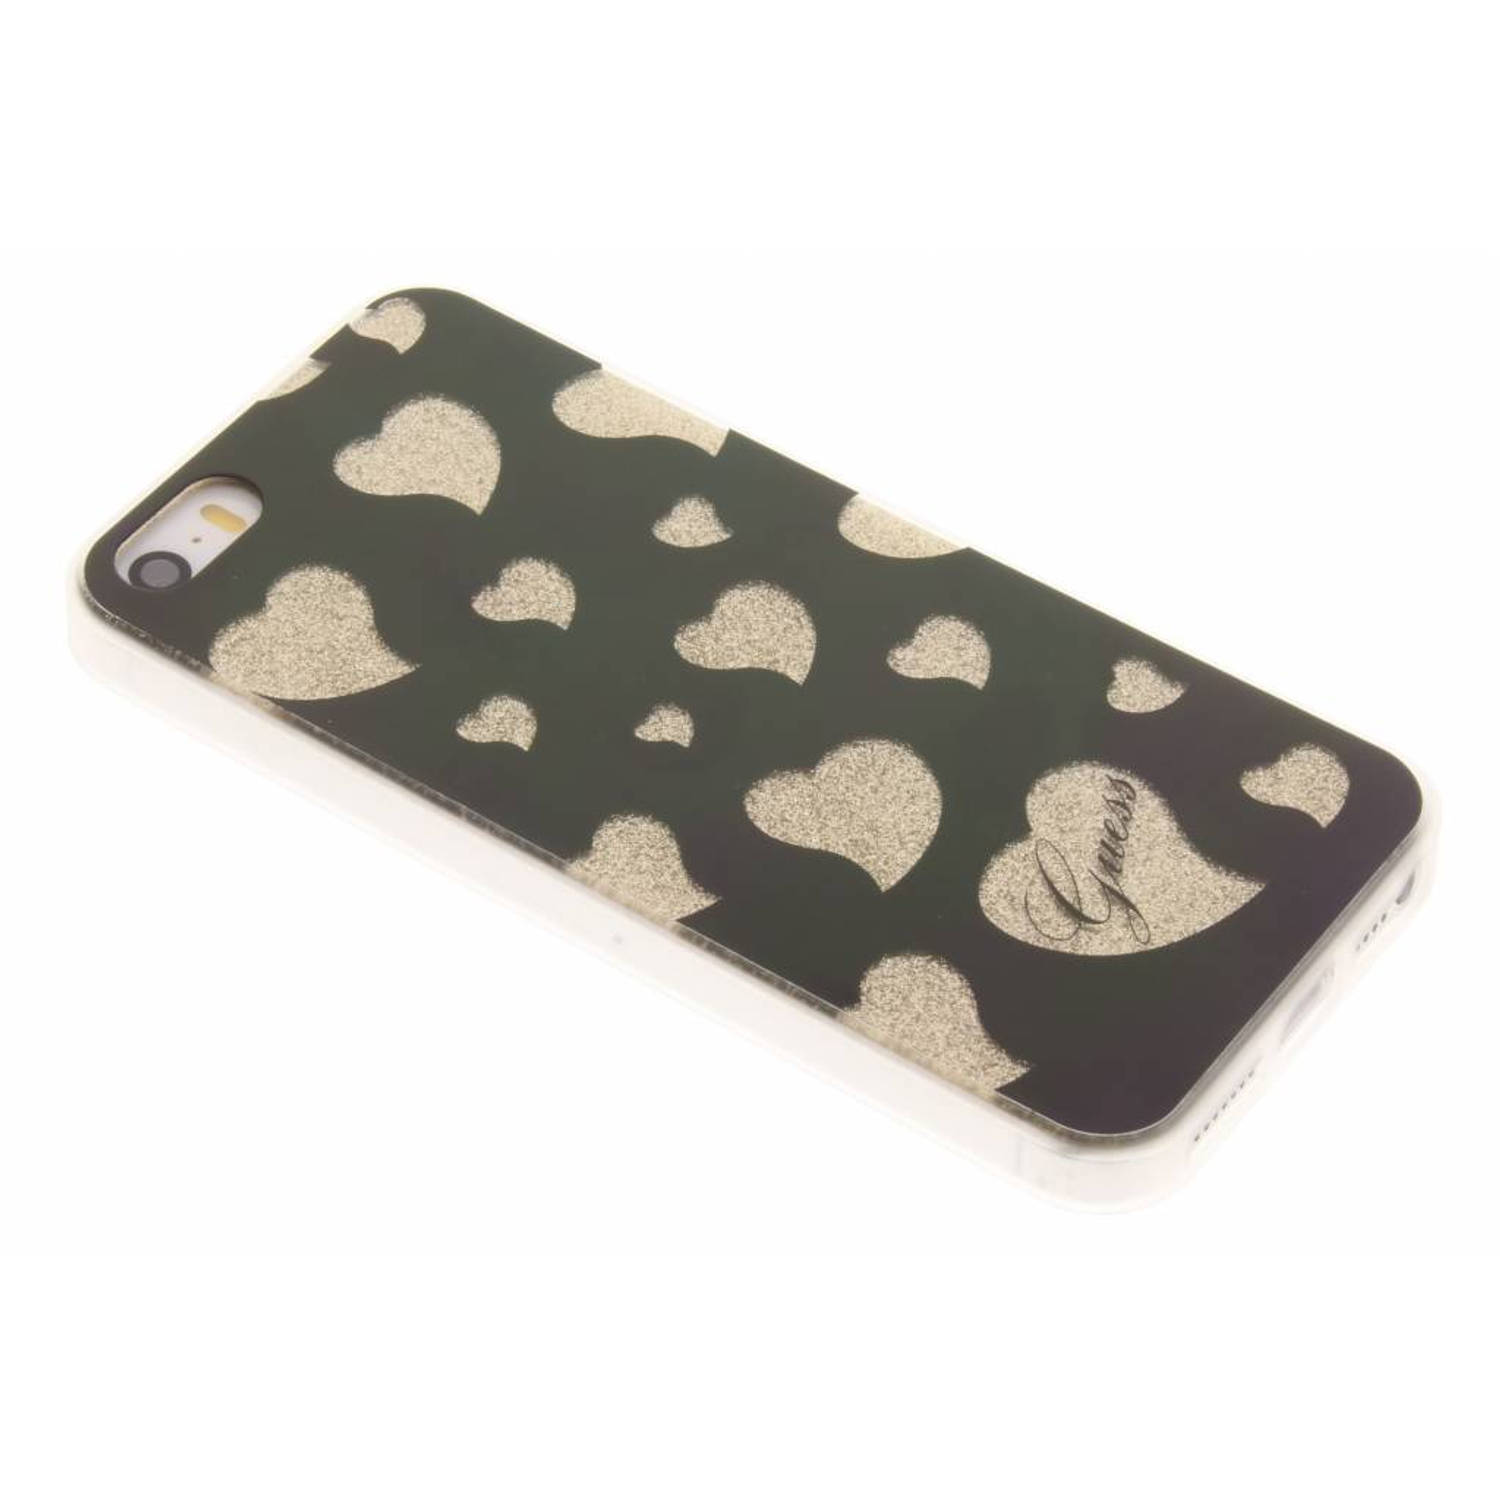 Hearts Soft TPU Case voor de iPhone 5 / 5s / SE - Gold